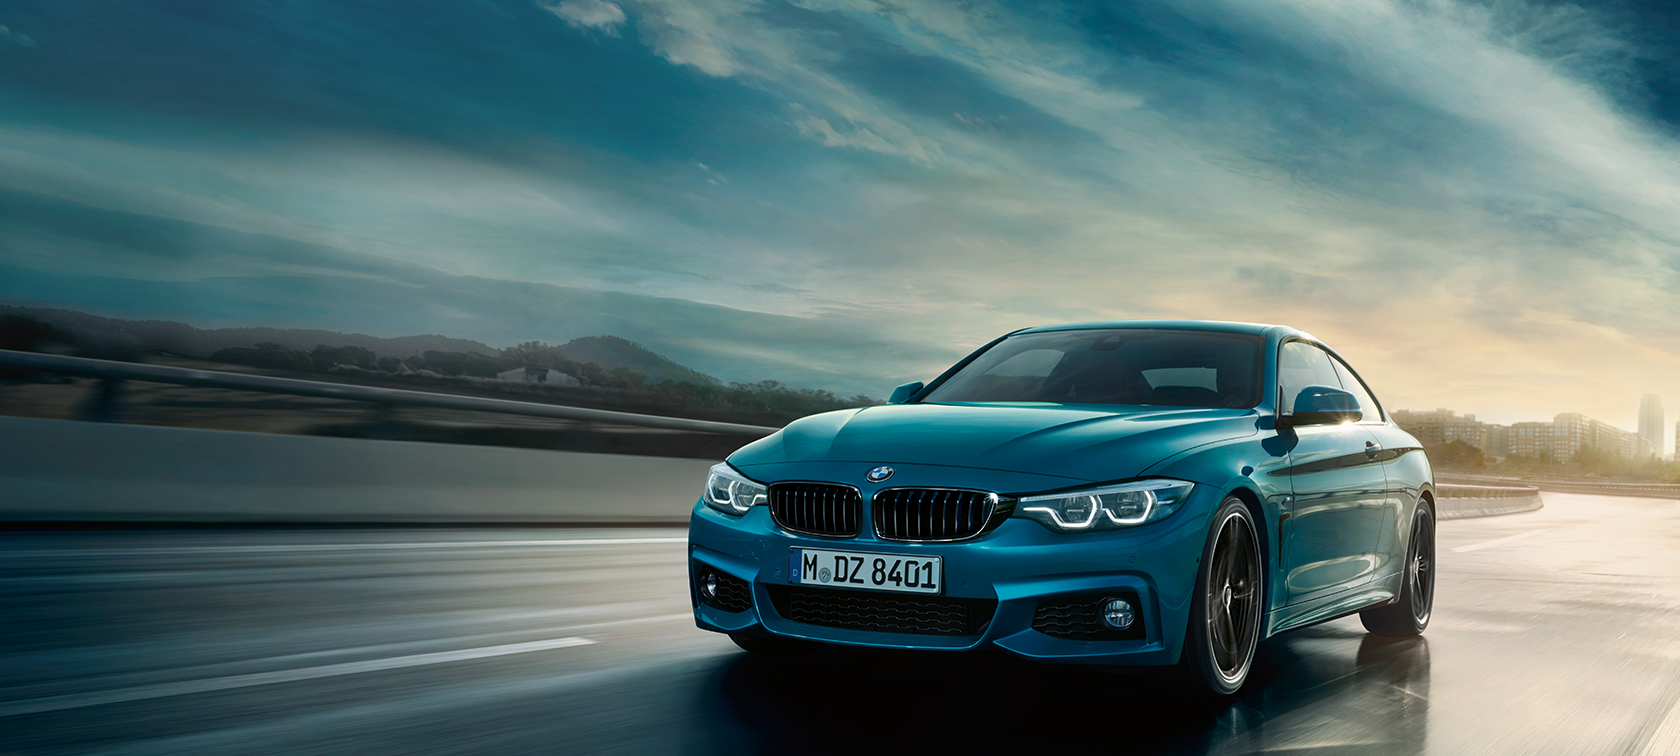 BMW 4 Series Coupé: more dynamic, agile and comfortable | BMW ca